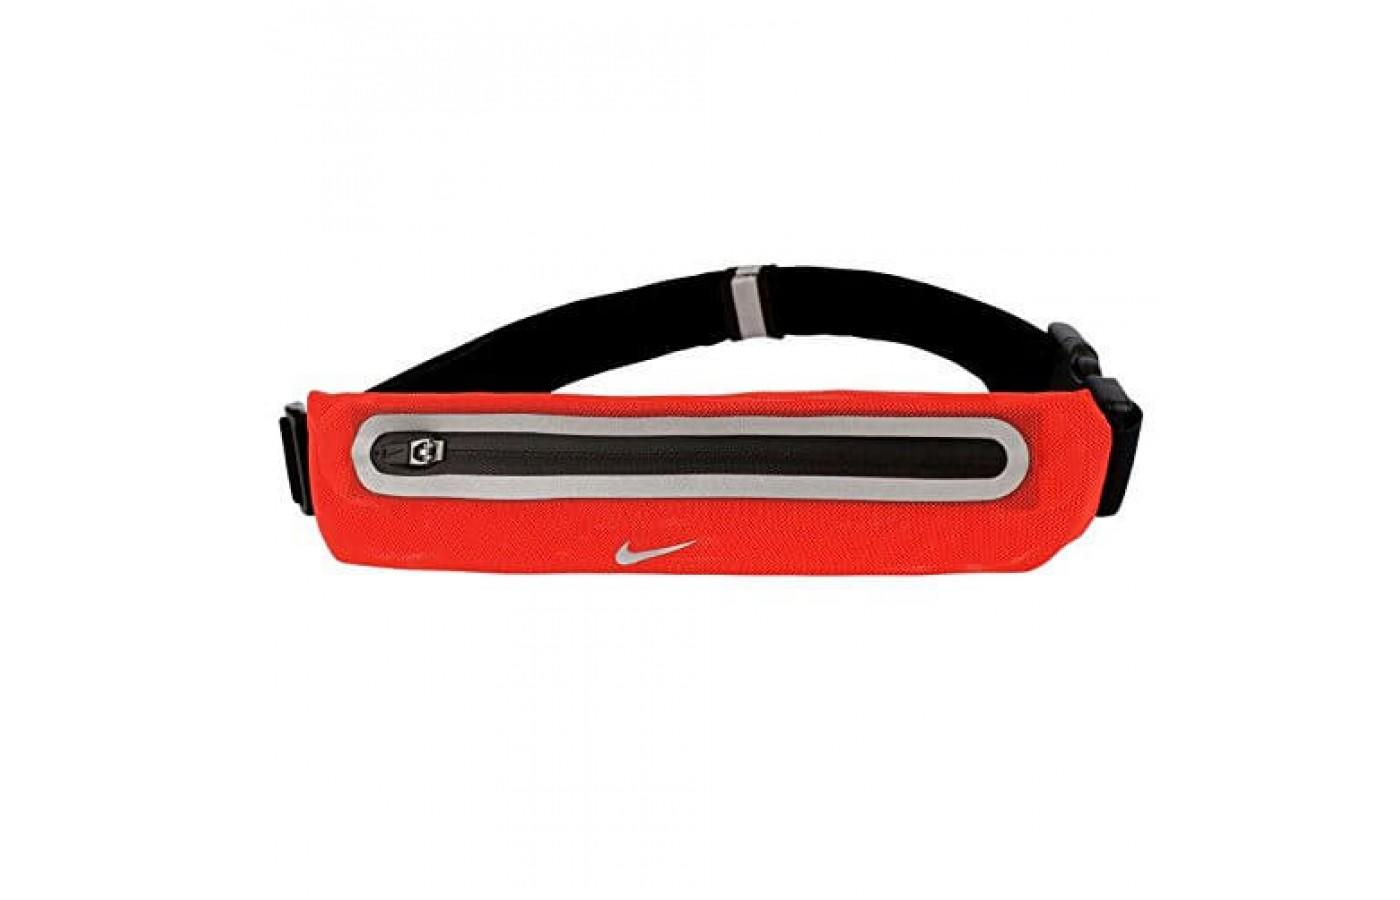 6c5f04f90893 ... The Nike Lean Waist Pack is made of stretchy fabric ...